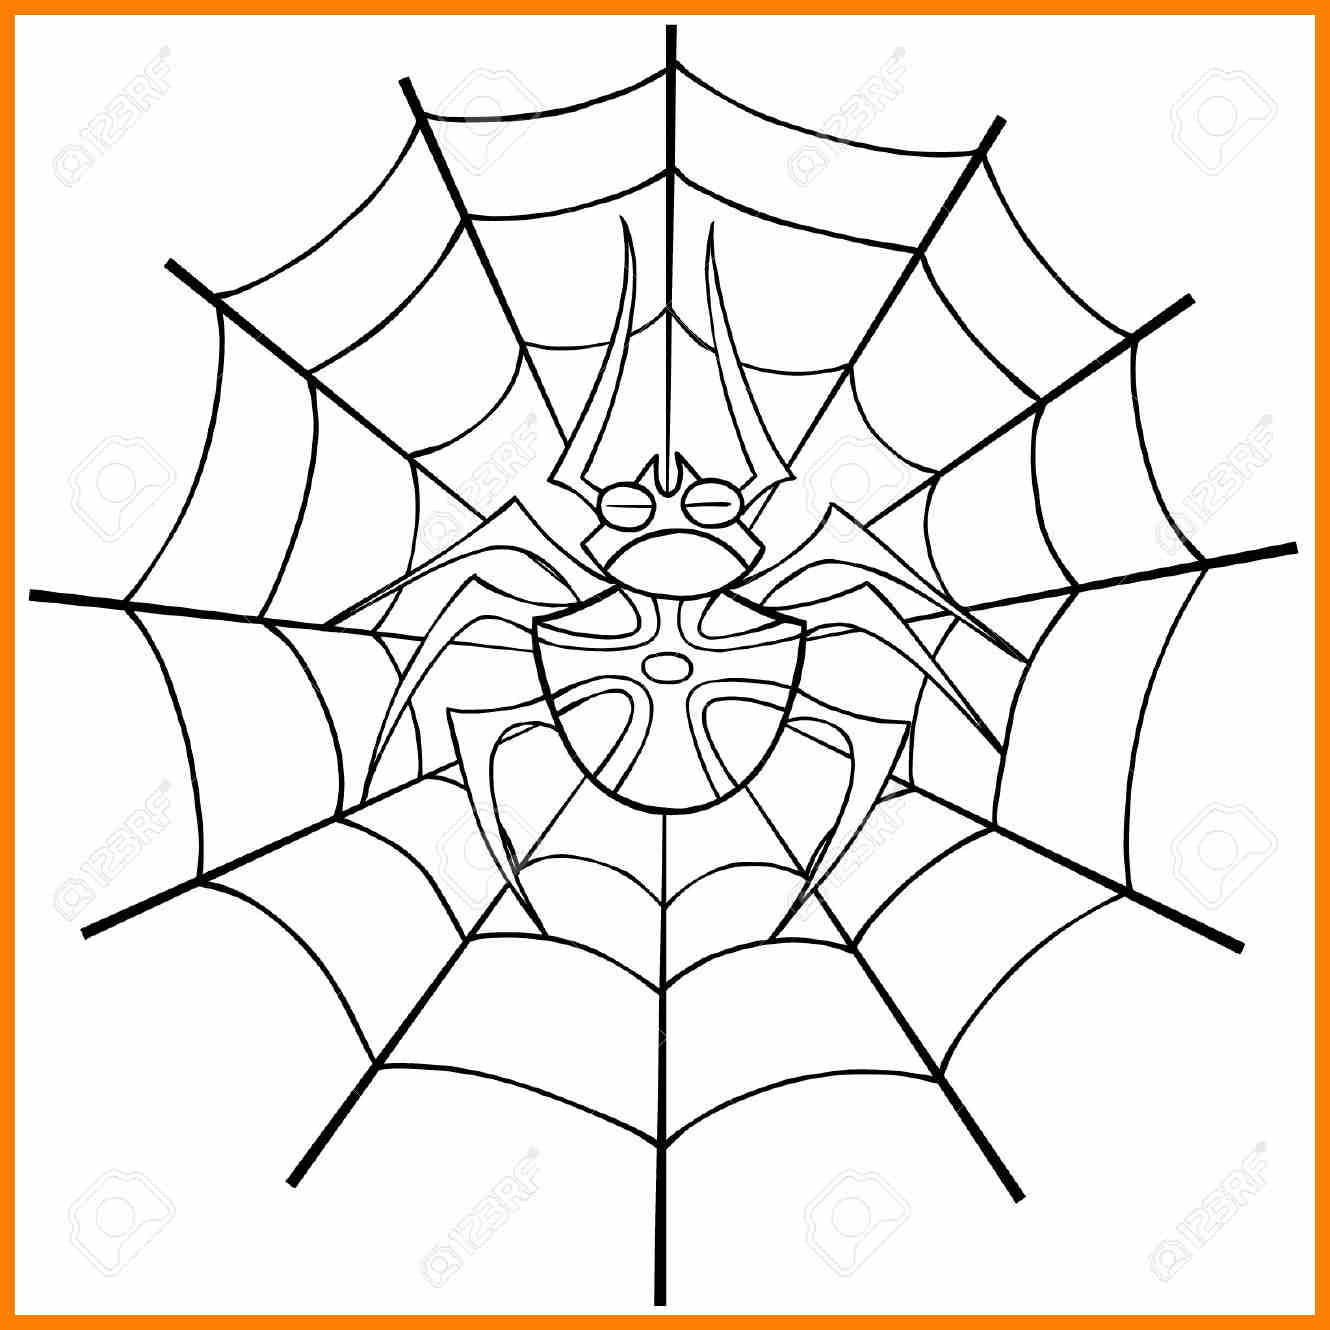 1330x1330 Spider Web Outline Awards Templates